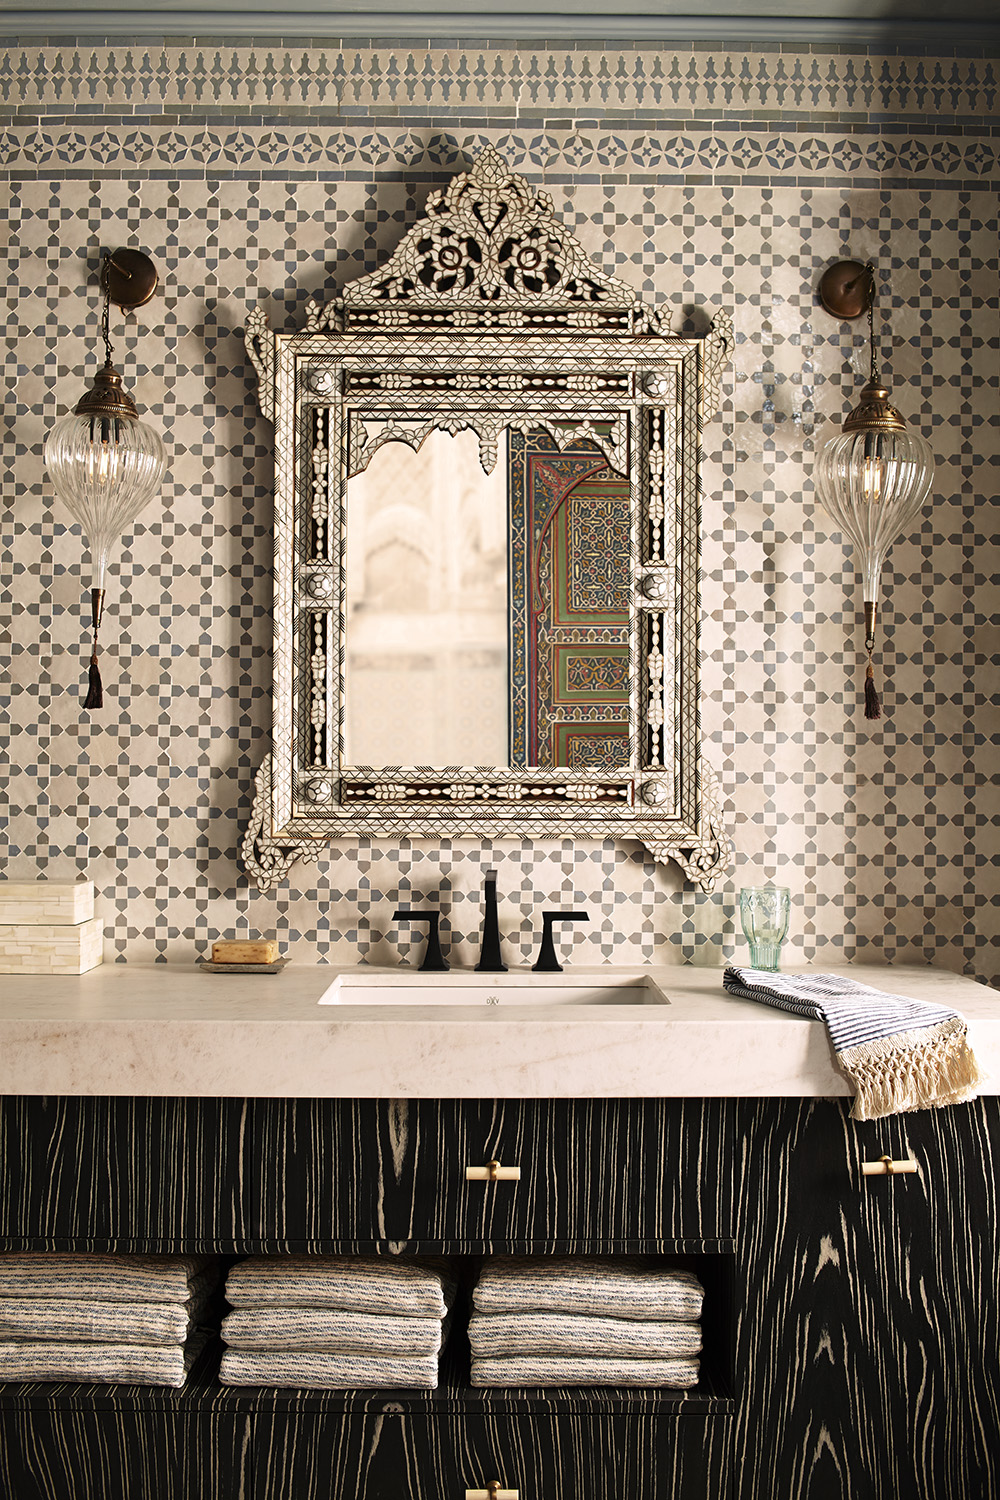 Black and White Ebony Vanity Steve Marshall - Design Kati Curtis for DXV - Photography Earl Kendall - Styling Jim Goulet